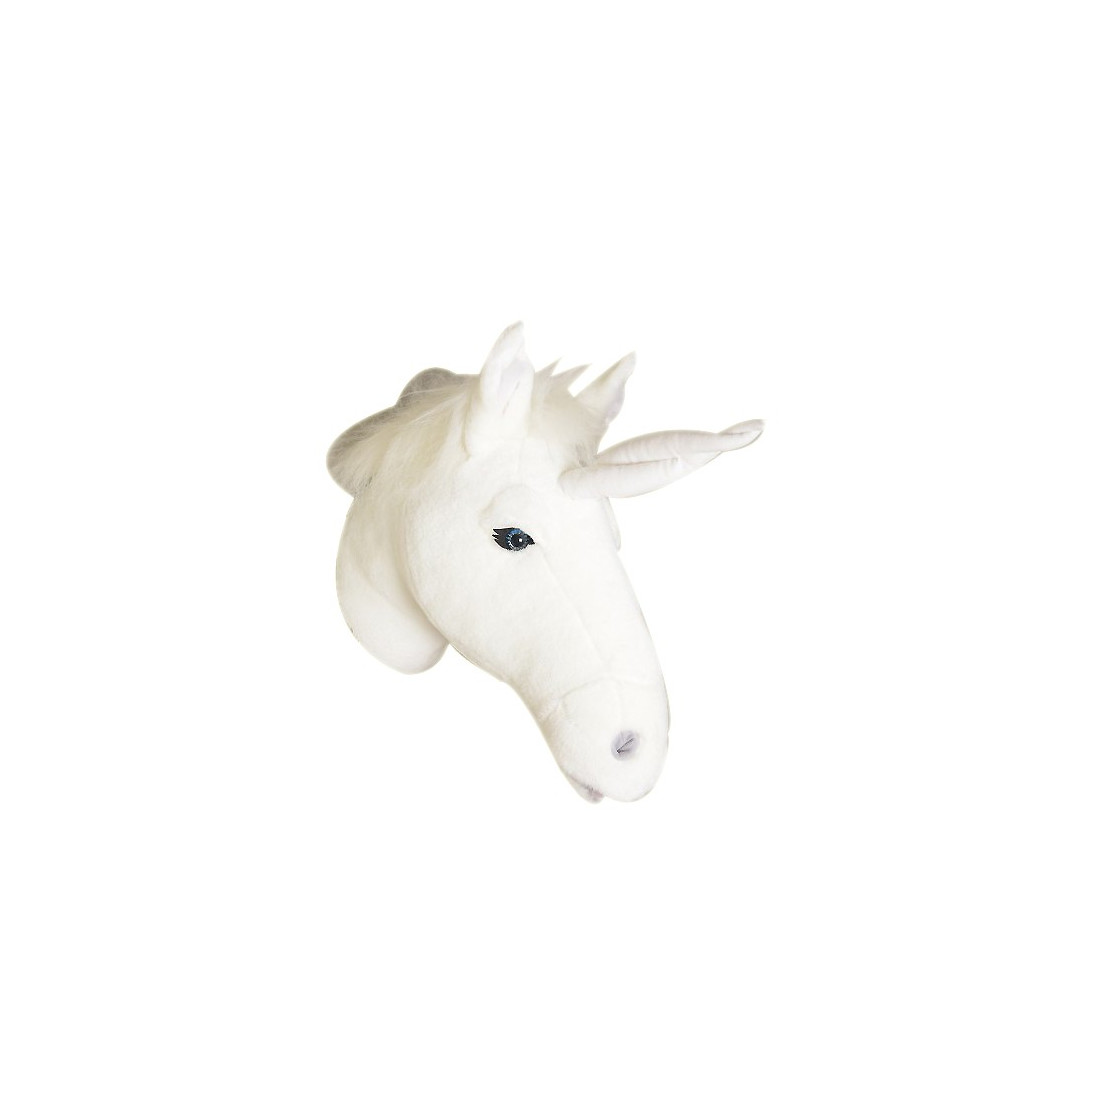 D co murale enfant peluche t te licorne blanche bibib ma for Decoration murale tete animaux